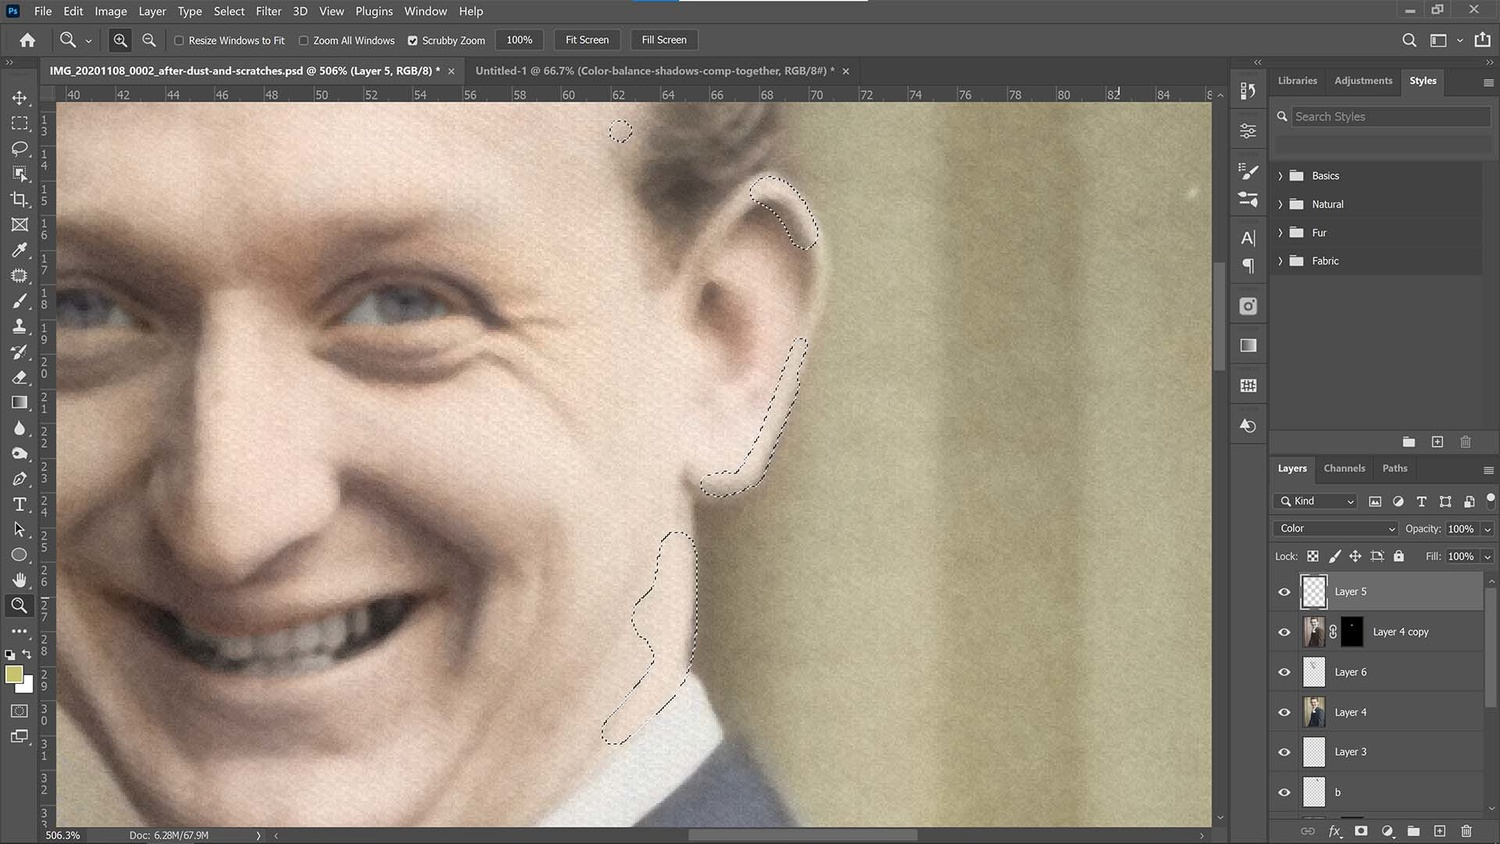 Paint over any gaps on the portrait